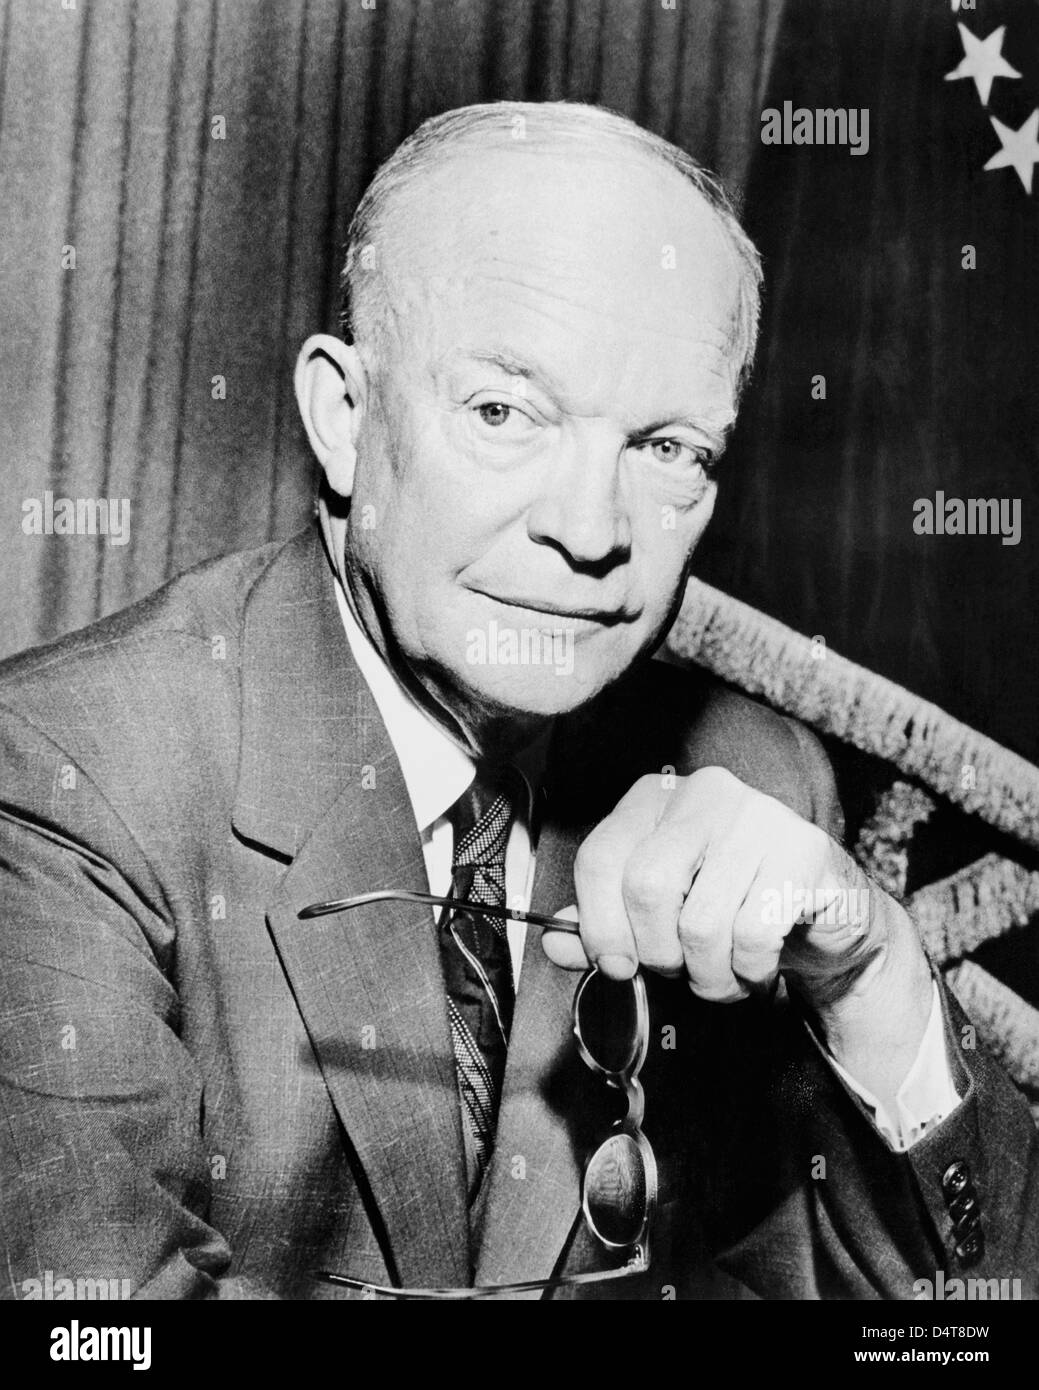 Digitally restored vintage American history photo of President Dwight Eisenhower holding a pair of glasses. - Stock Image